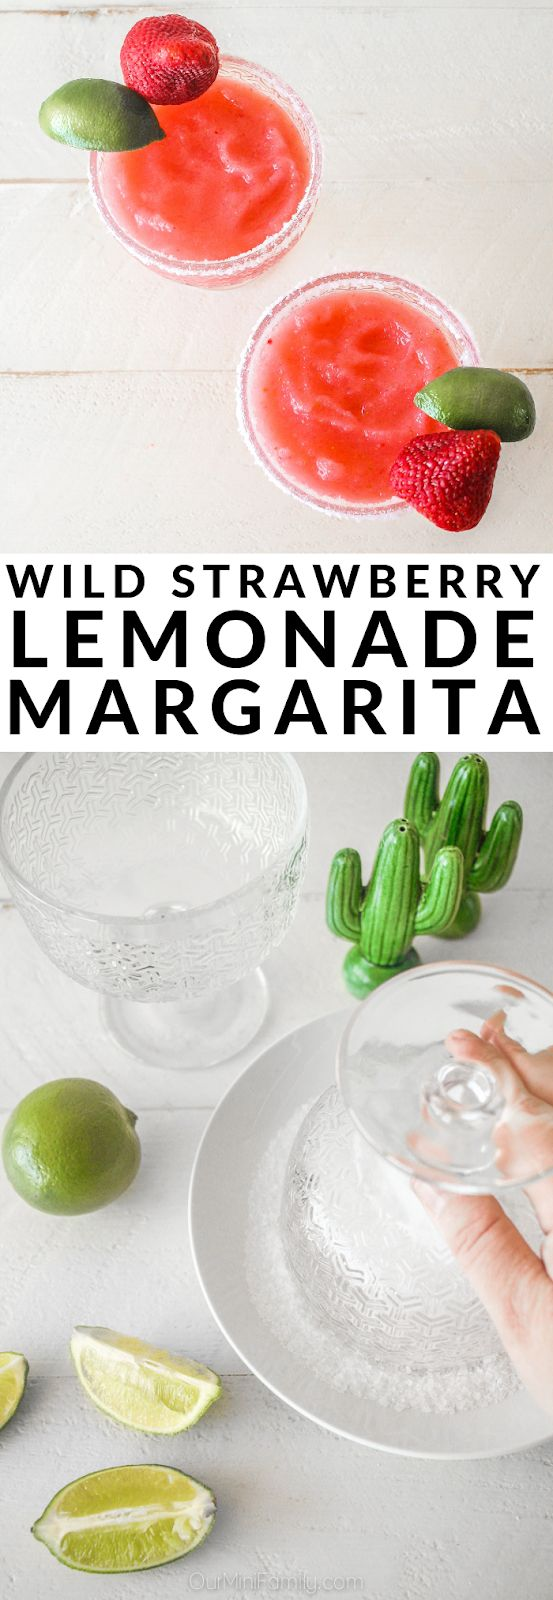 These strawberry lemonade margaritas are so yummy and perfect for a late afterno…